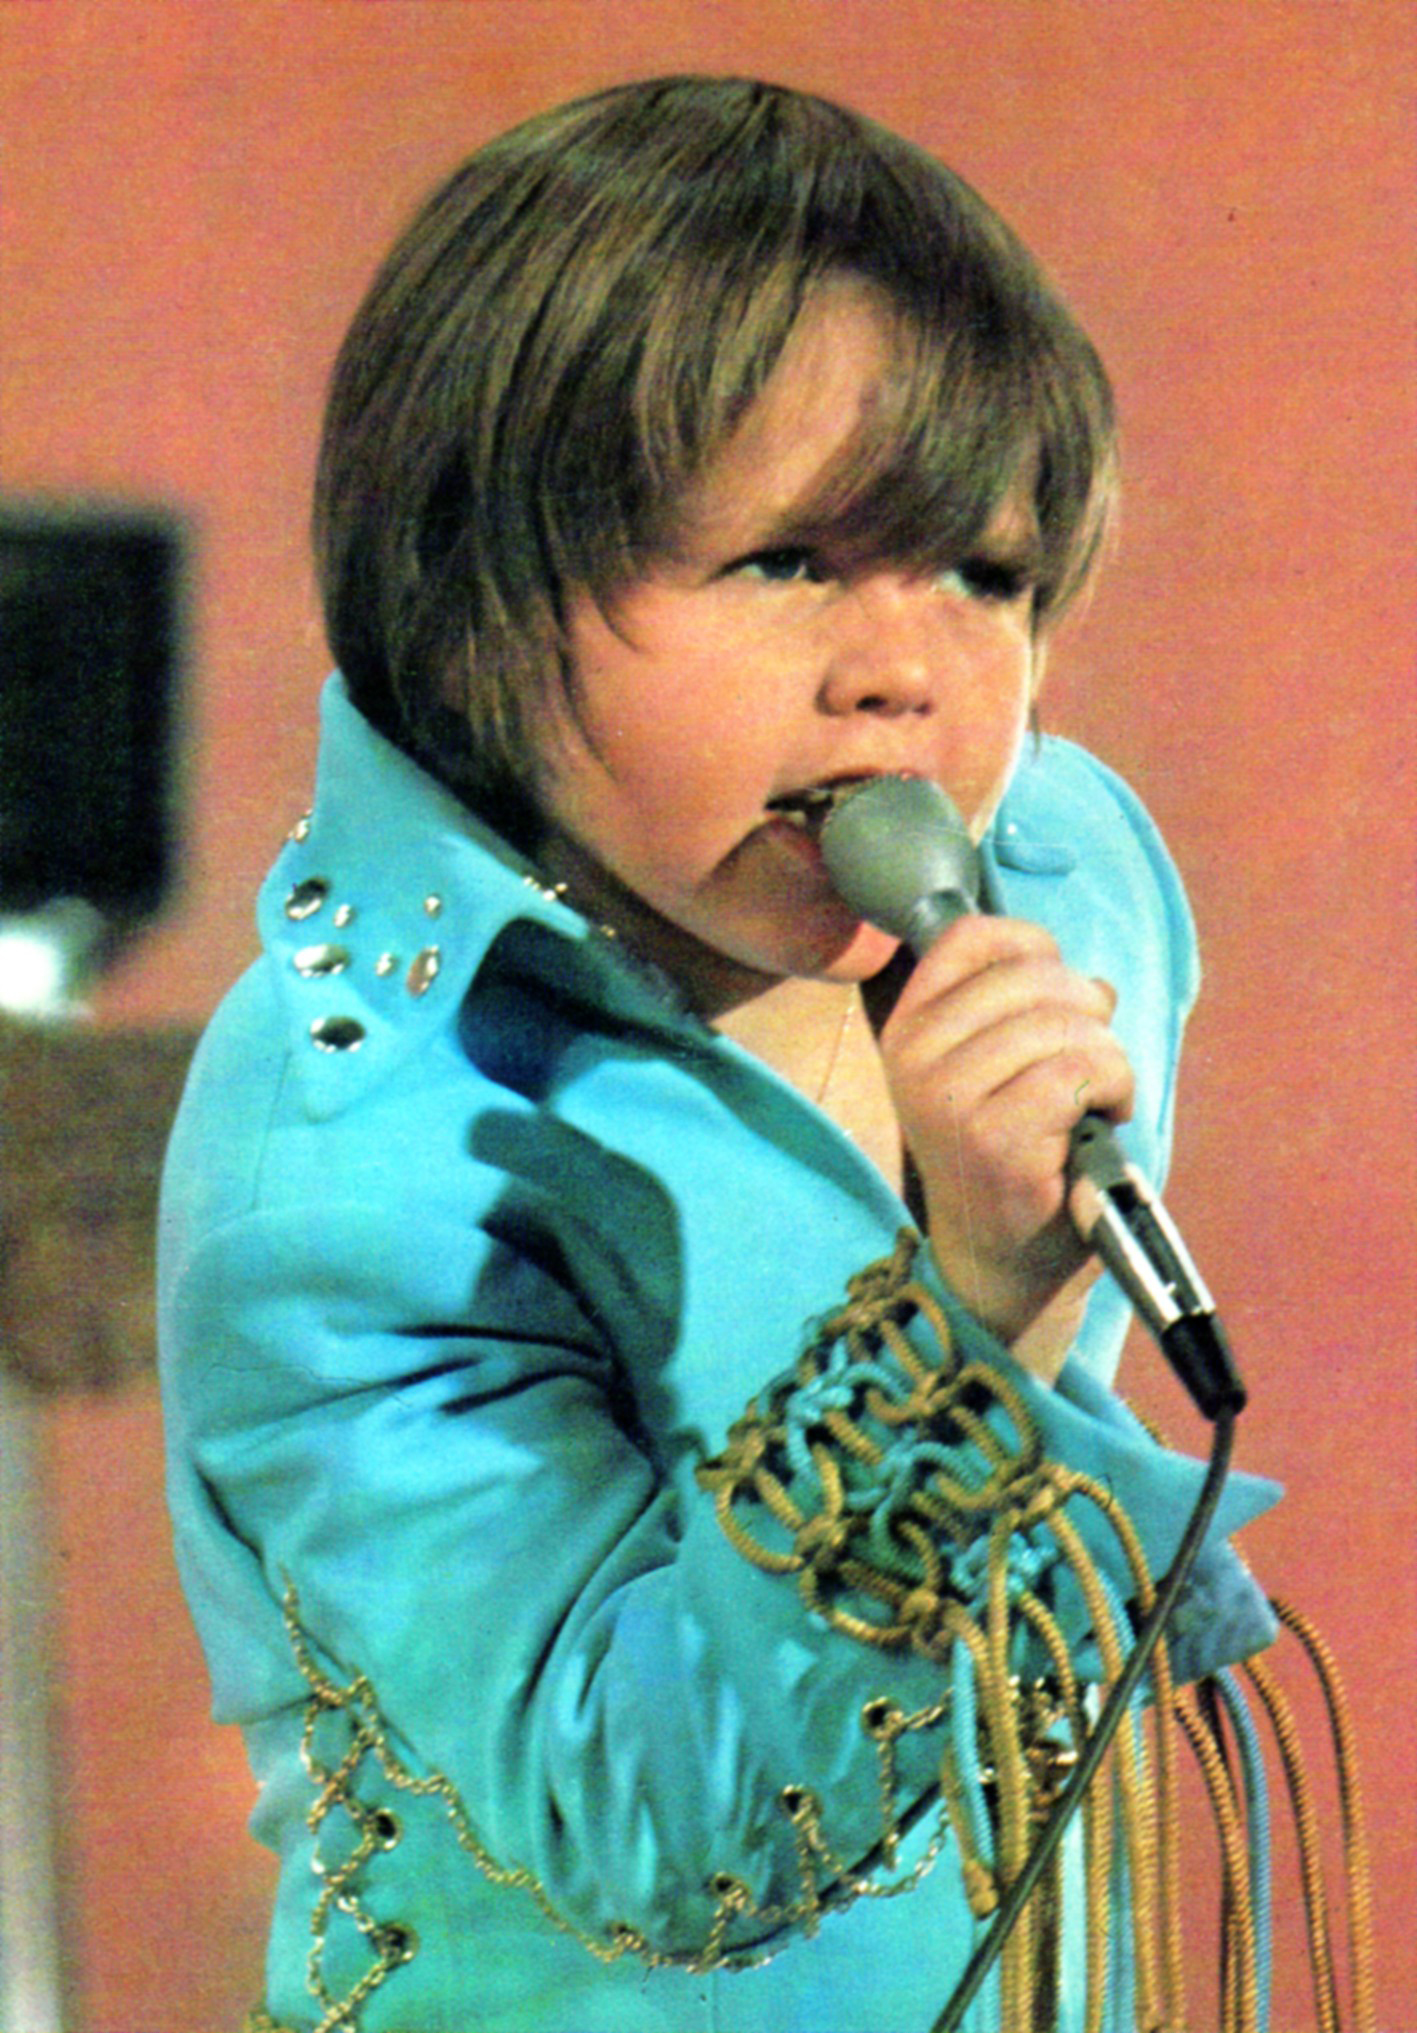 Image result for little jimmy osmond images